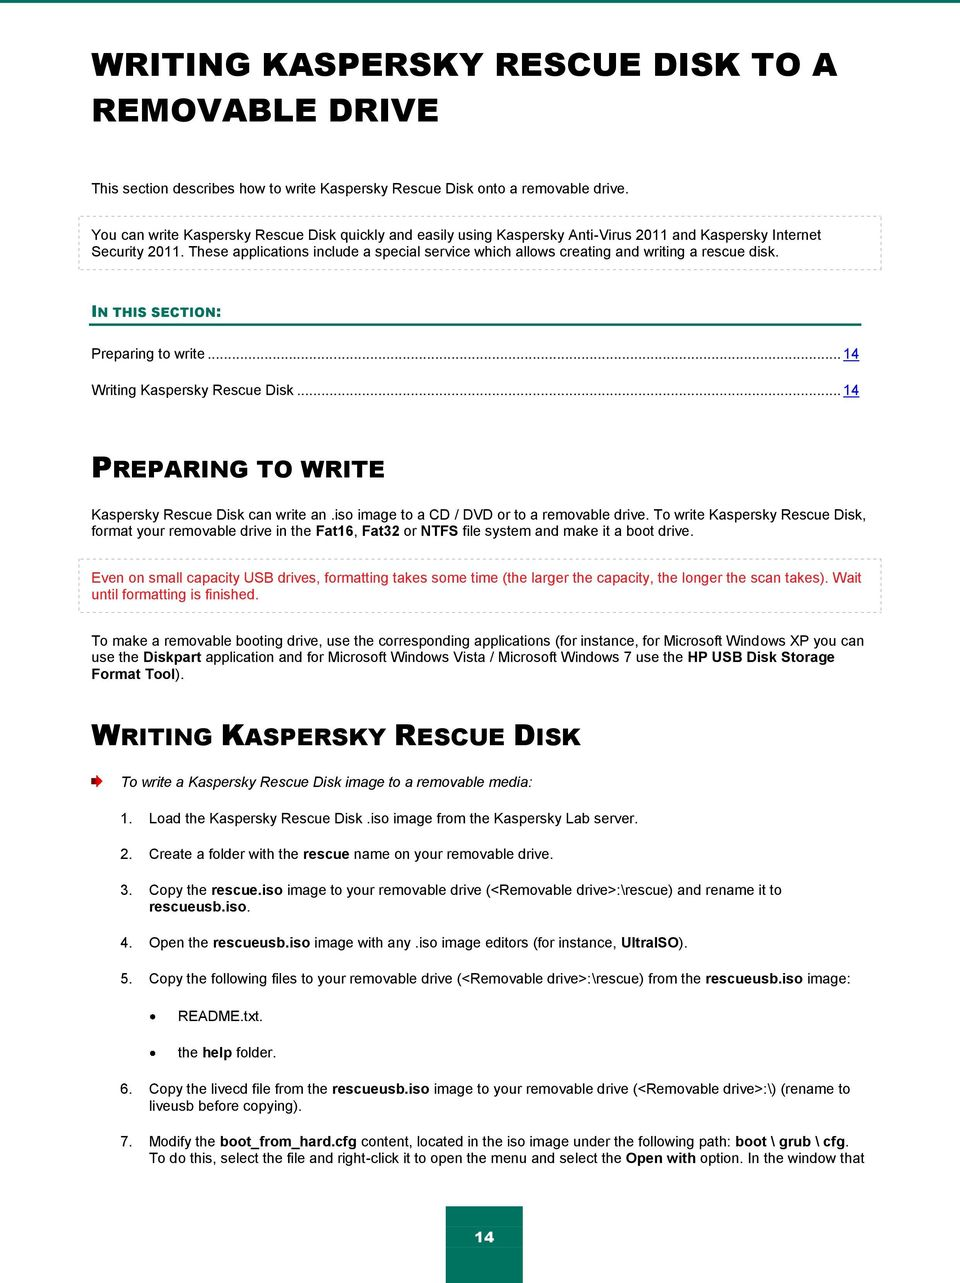 These applications include a special service which allows creating and writing a rescue disk. IN THIS SECTION: Preparing to write... 14 Writing Kaspersky Rescue Disk.